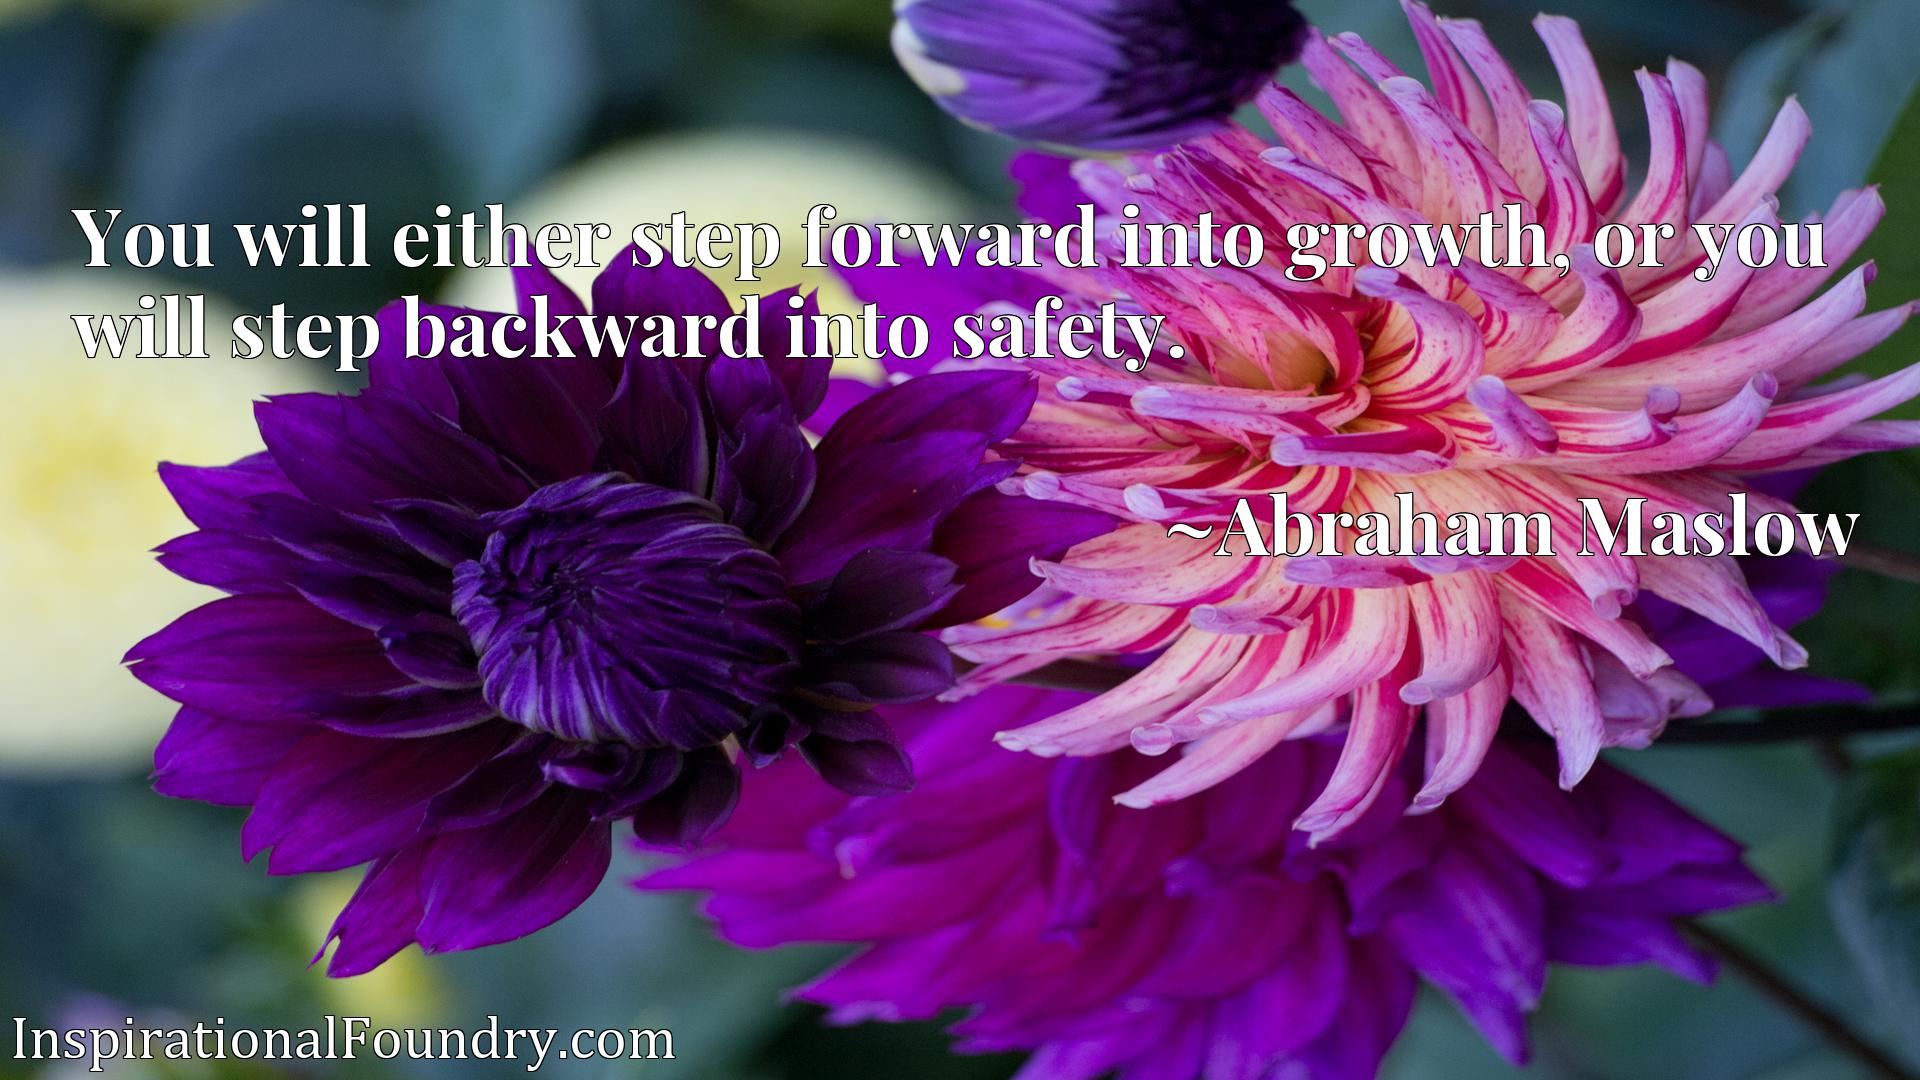 You will either step forward into growth, or you will step backward into safety.